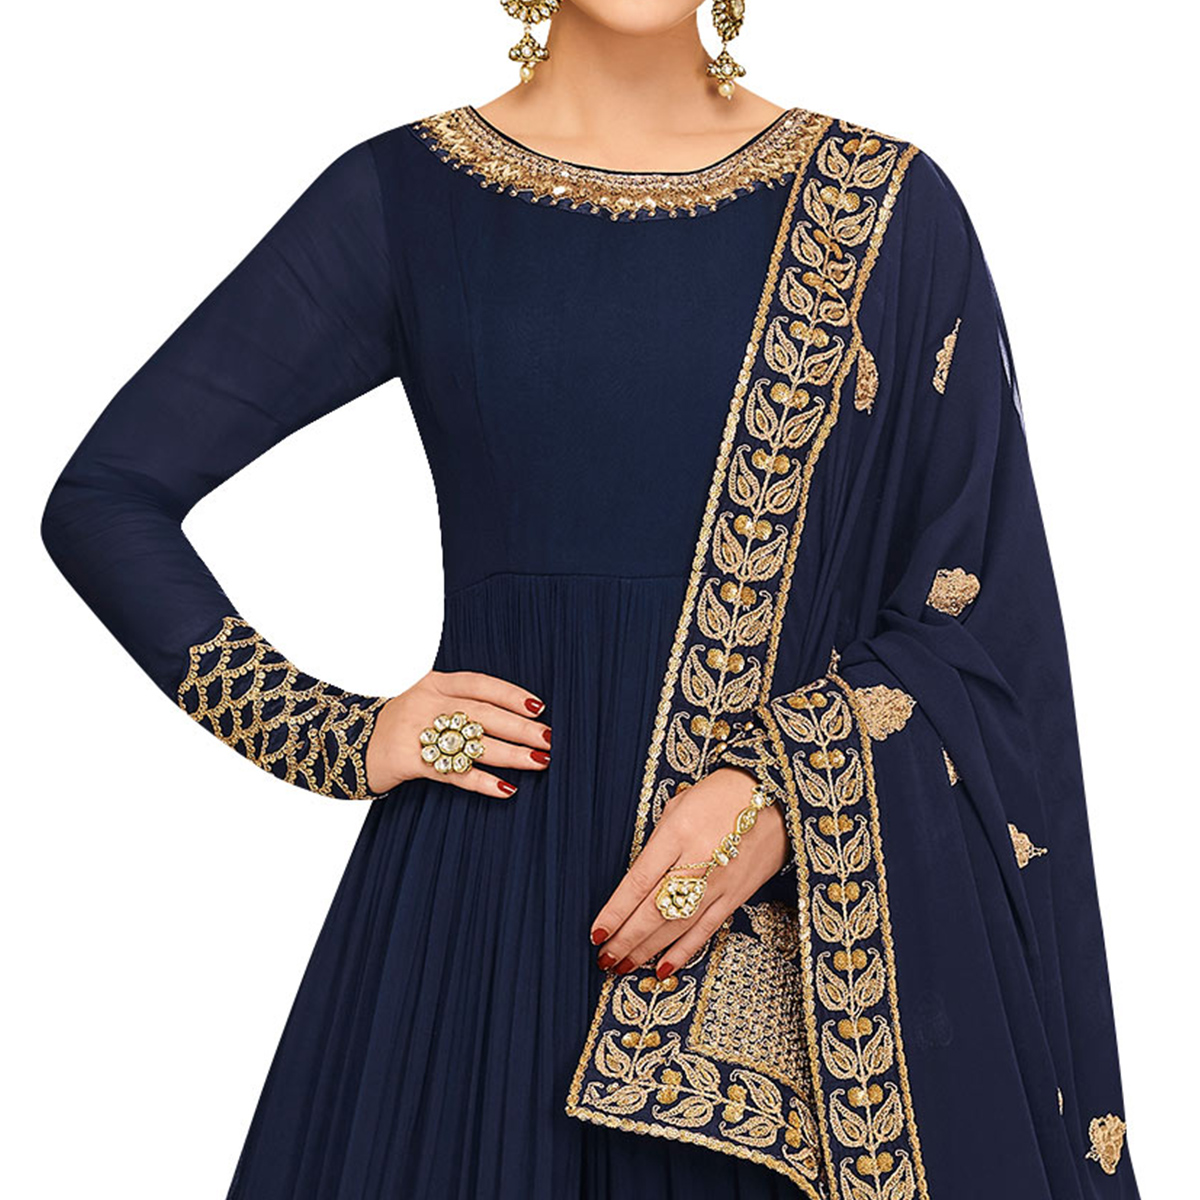 Appealing Navy Blue Colored Partywear Embroidered Mulberry Silk Anarkali Suit